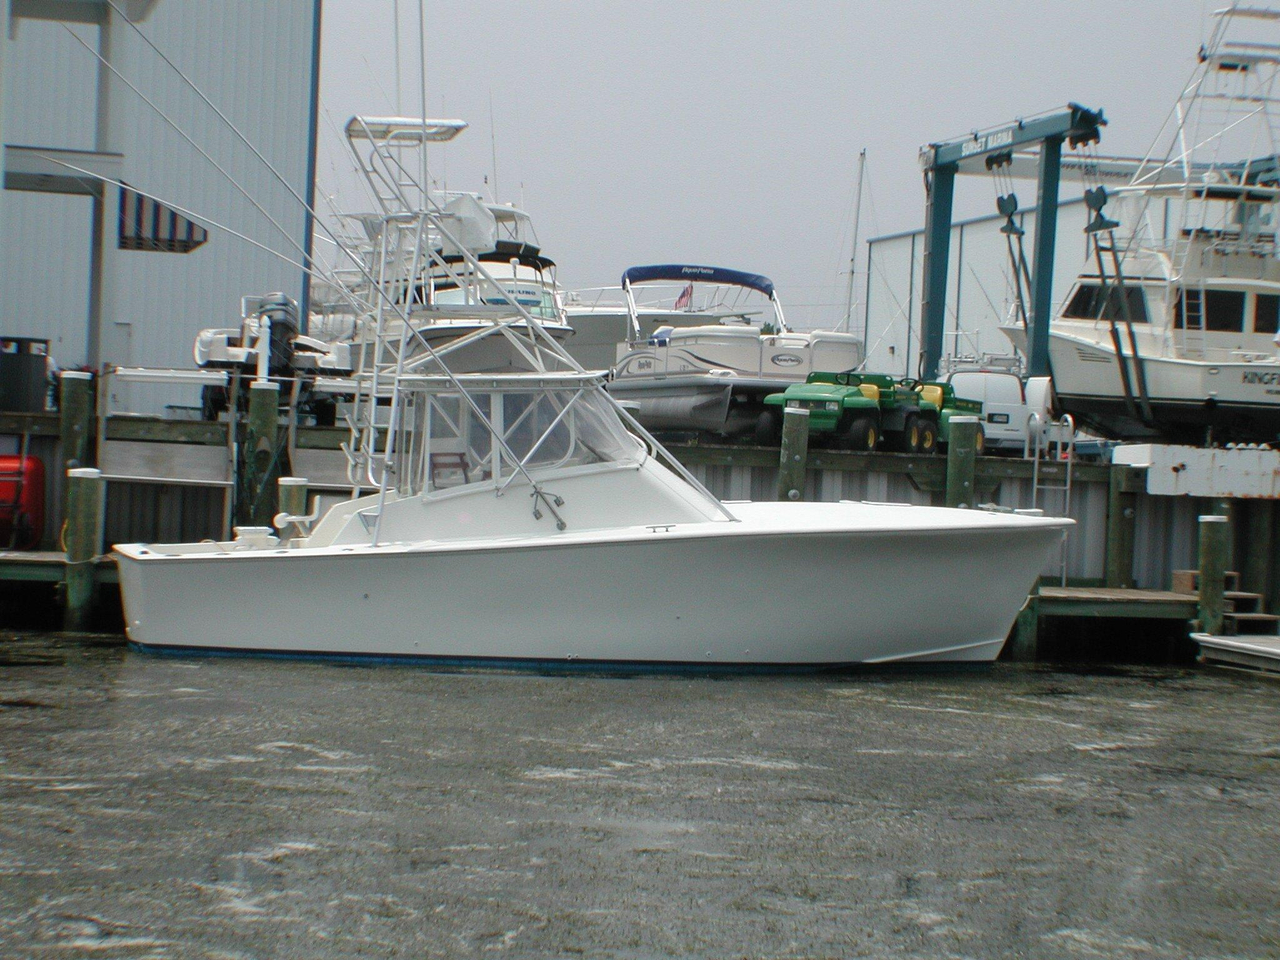 1987 used island boat works custom carolina sports fishing for Used fishing boats for sale in md